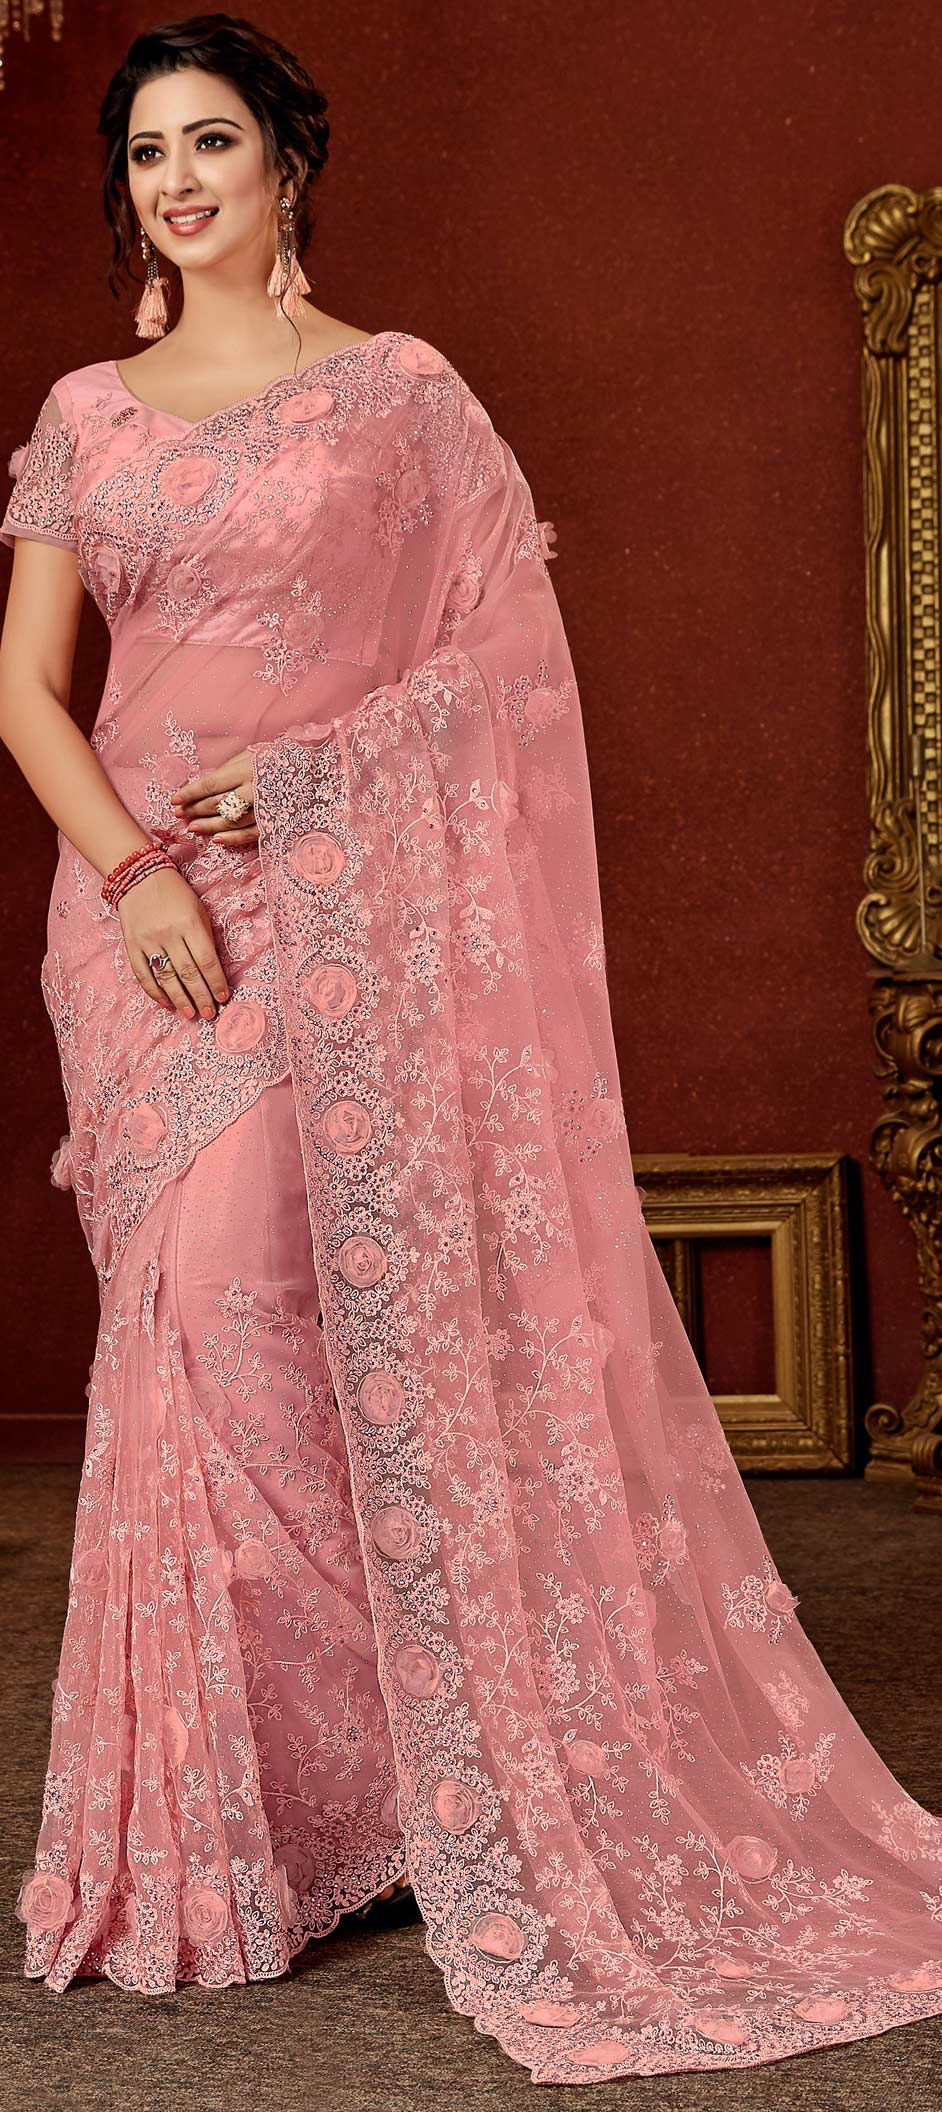 Net Bollywood Saree in Pink and Majenta with Embroidered work